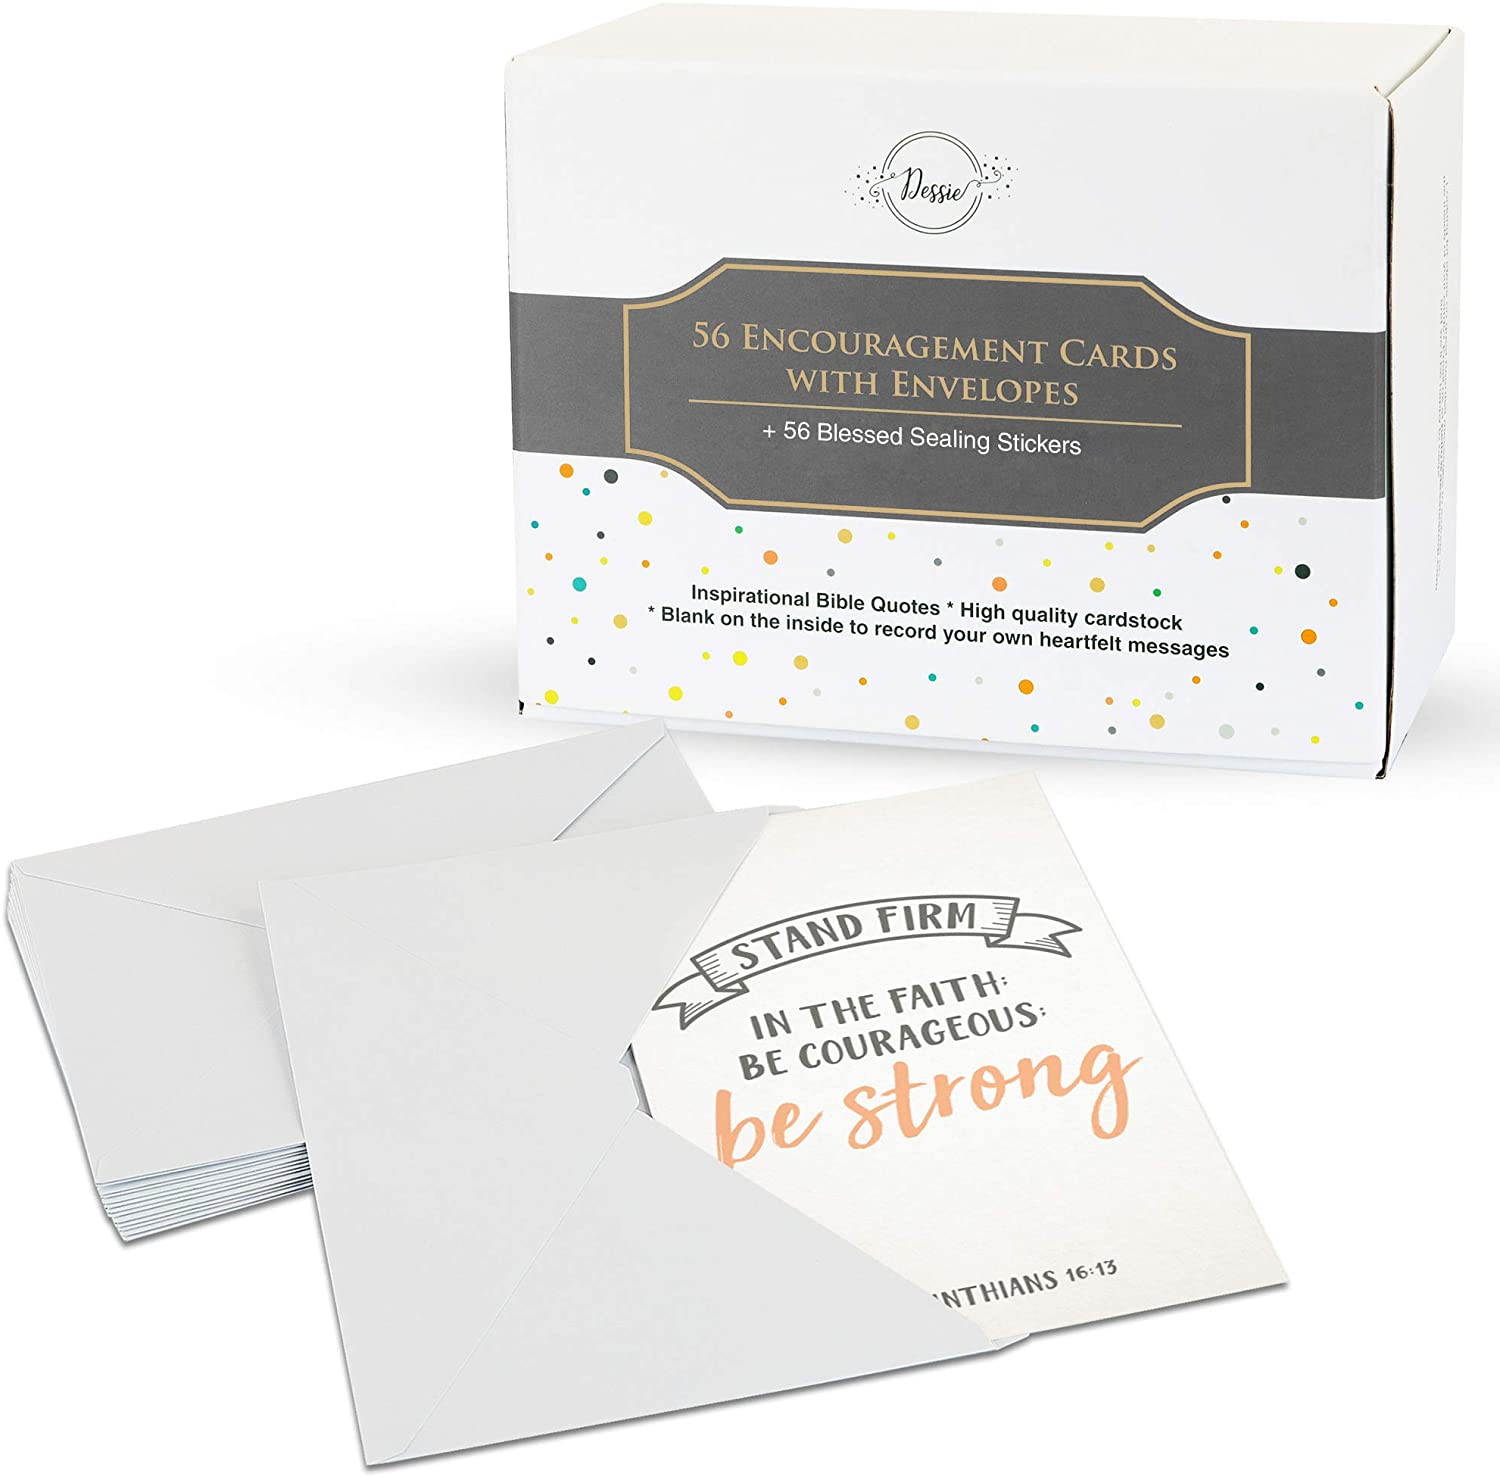 Dessie 56 Pack Inspirational Bible Verse Cards with Envelopes